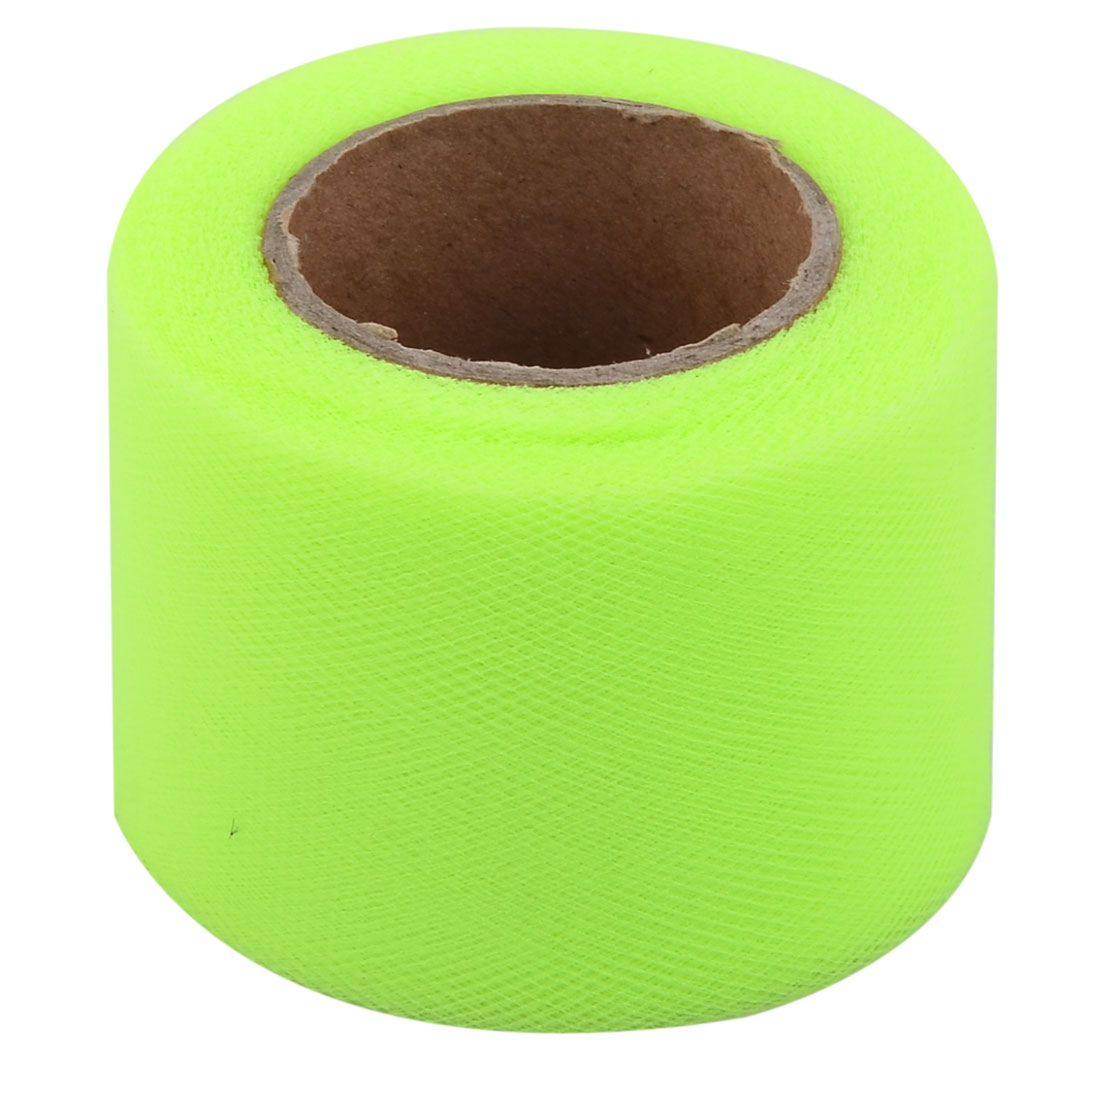 Wedding Feast Polyester Tutu Gift Handicraft Tulle Spool Roll Green Yellow 2 Inch x 25 Yards